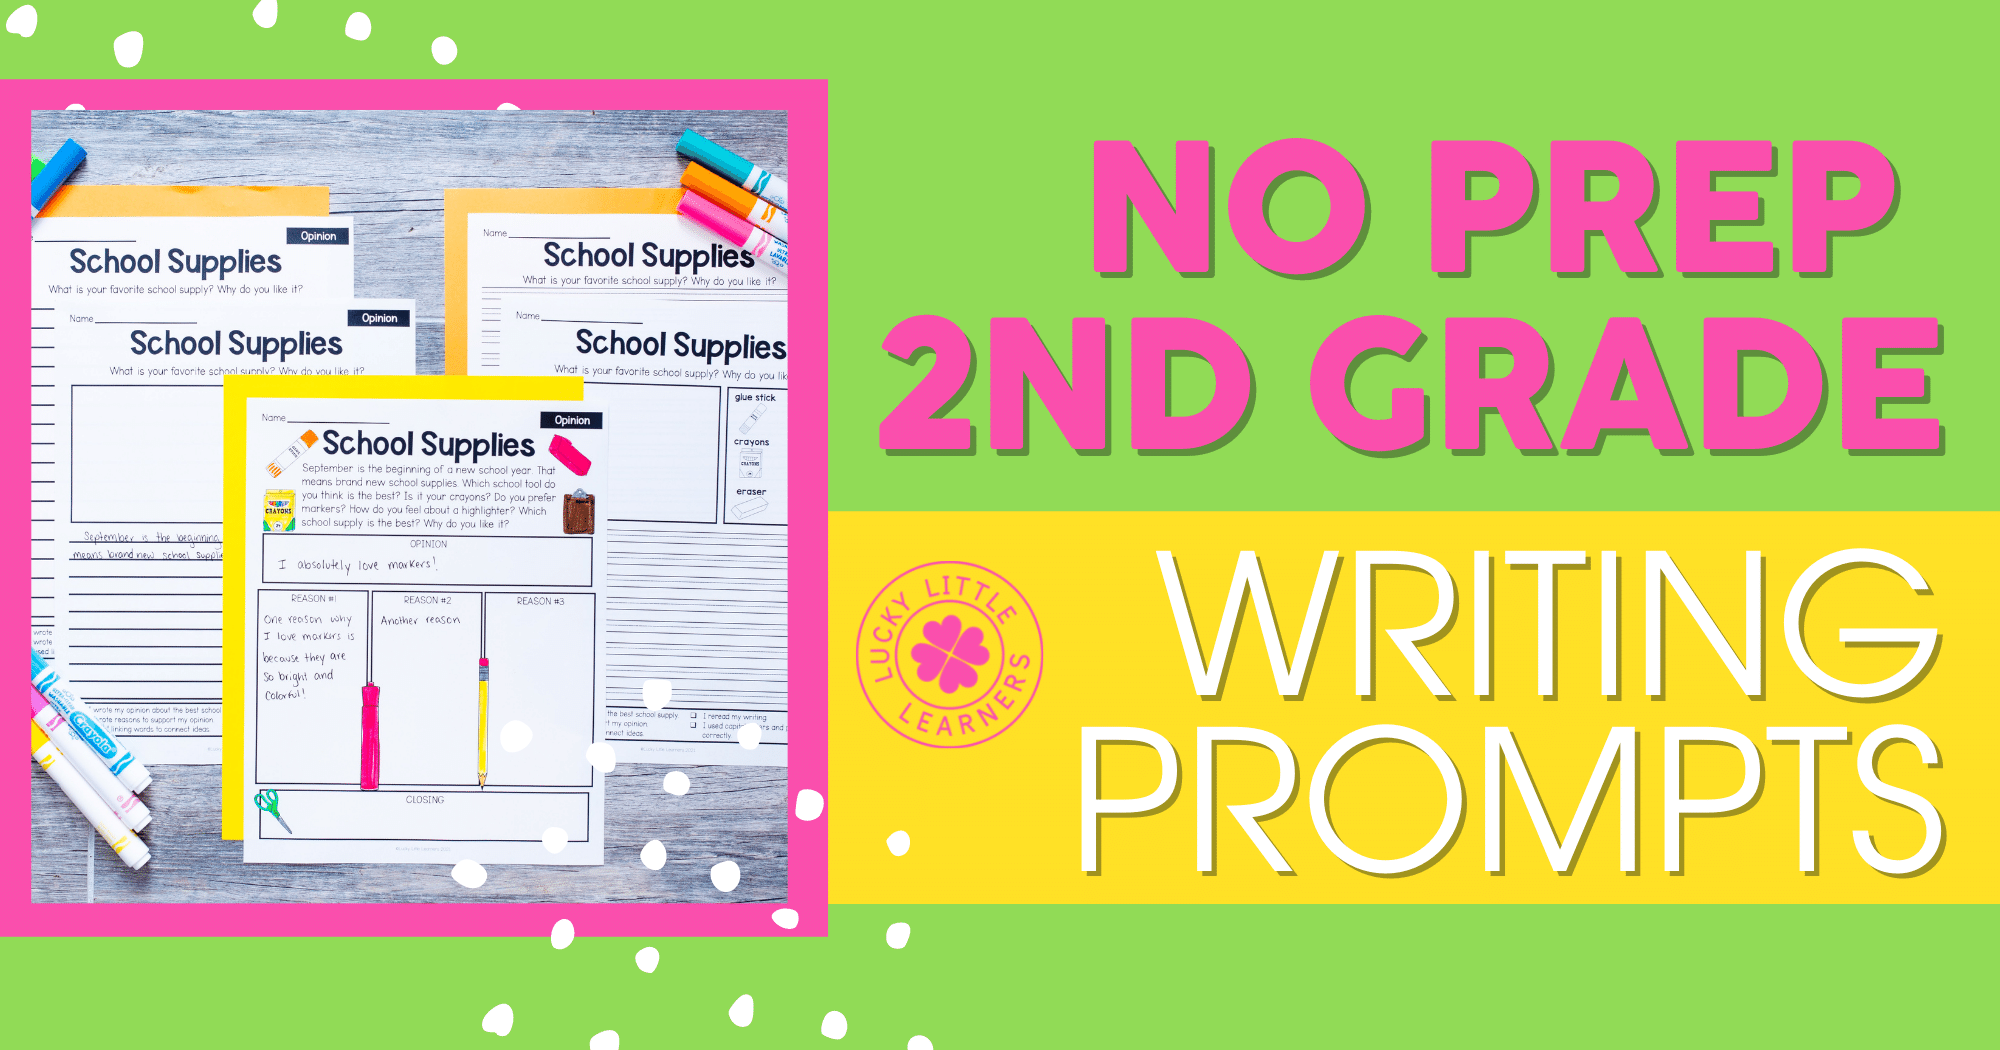 No Prep 2nd Grade Writing Prompts